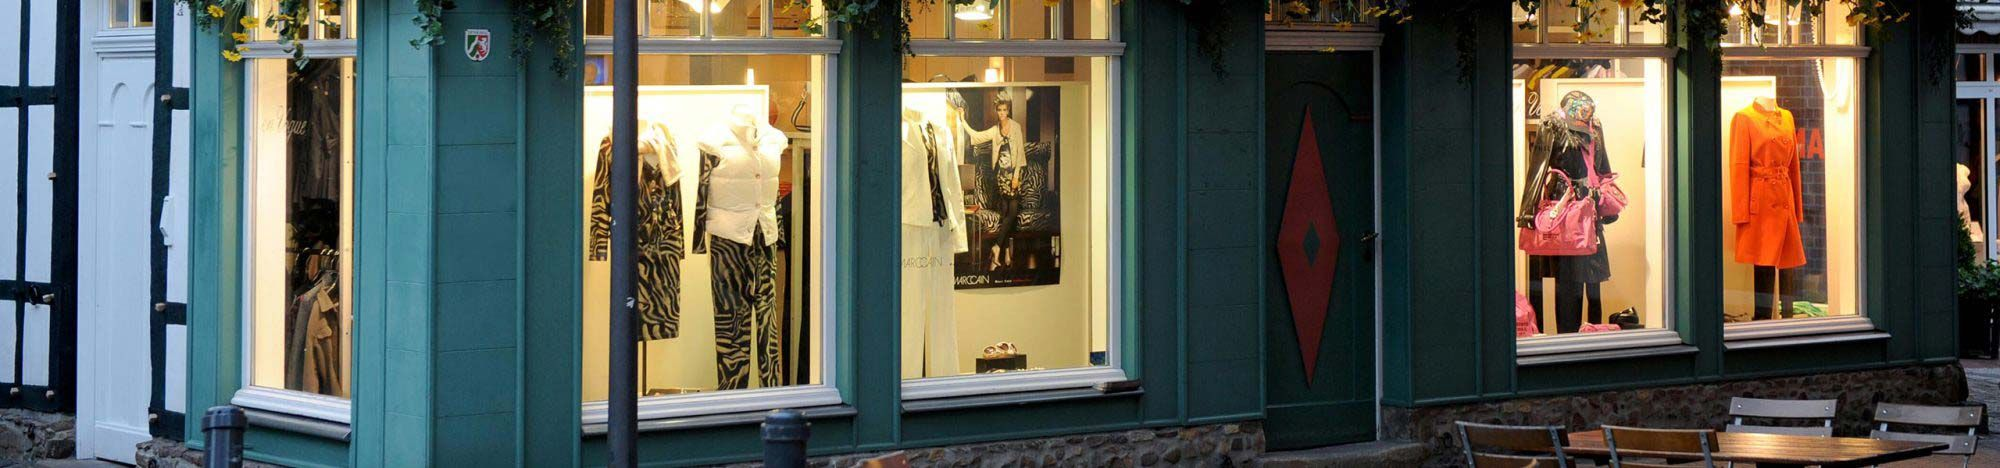 Boutique en Vogue am Abend in Recklinghausen